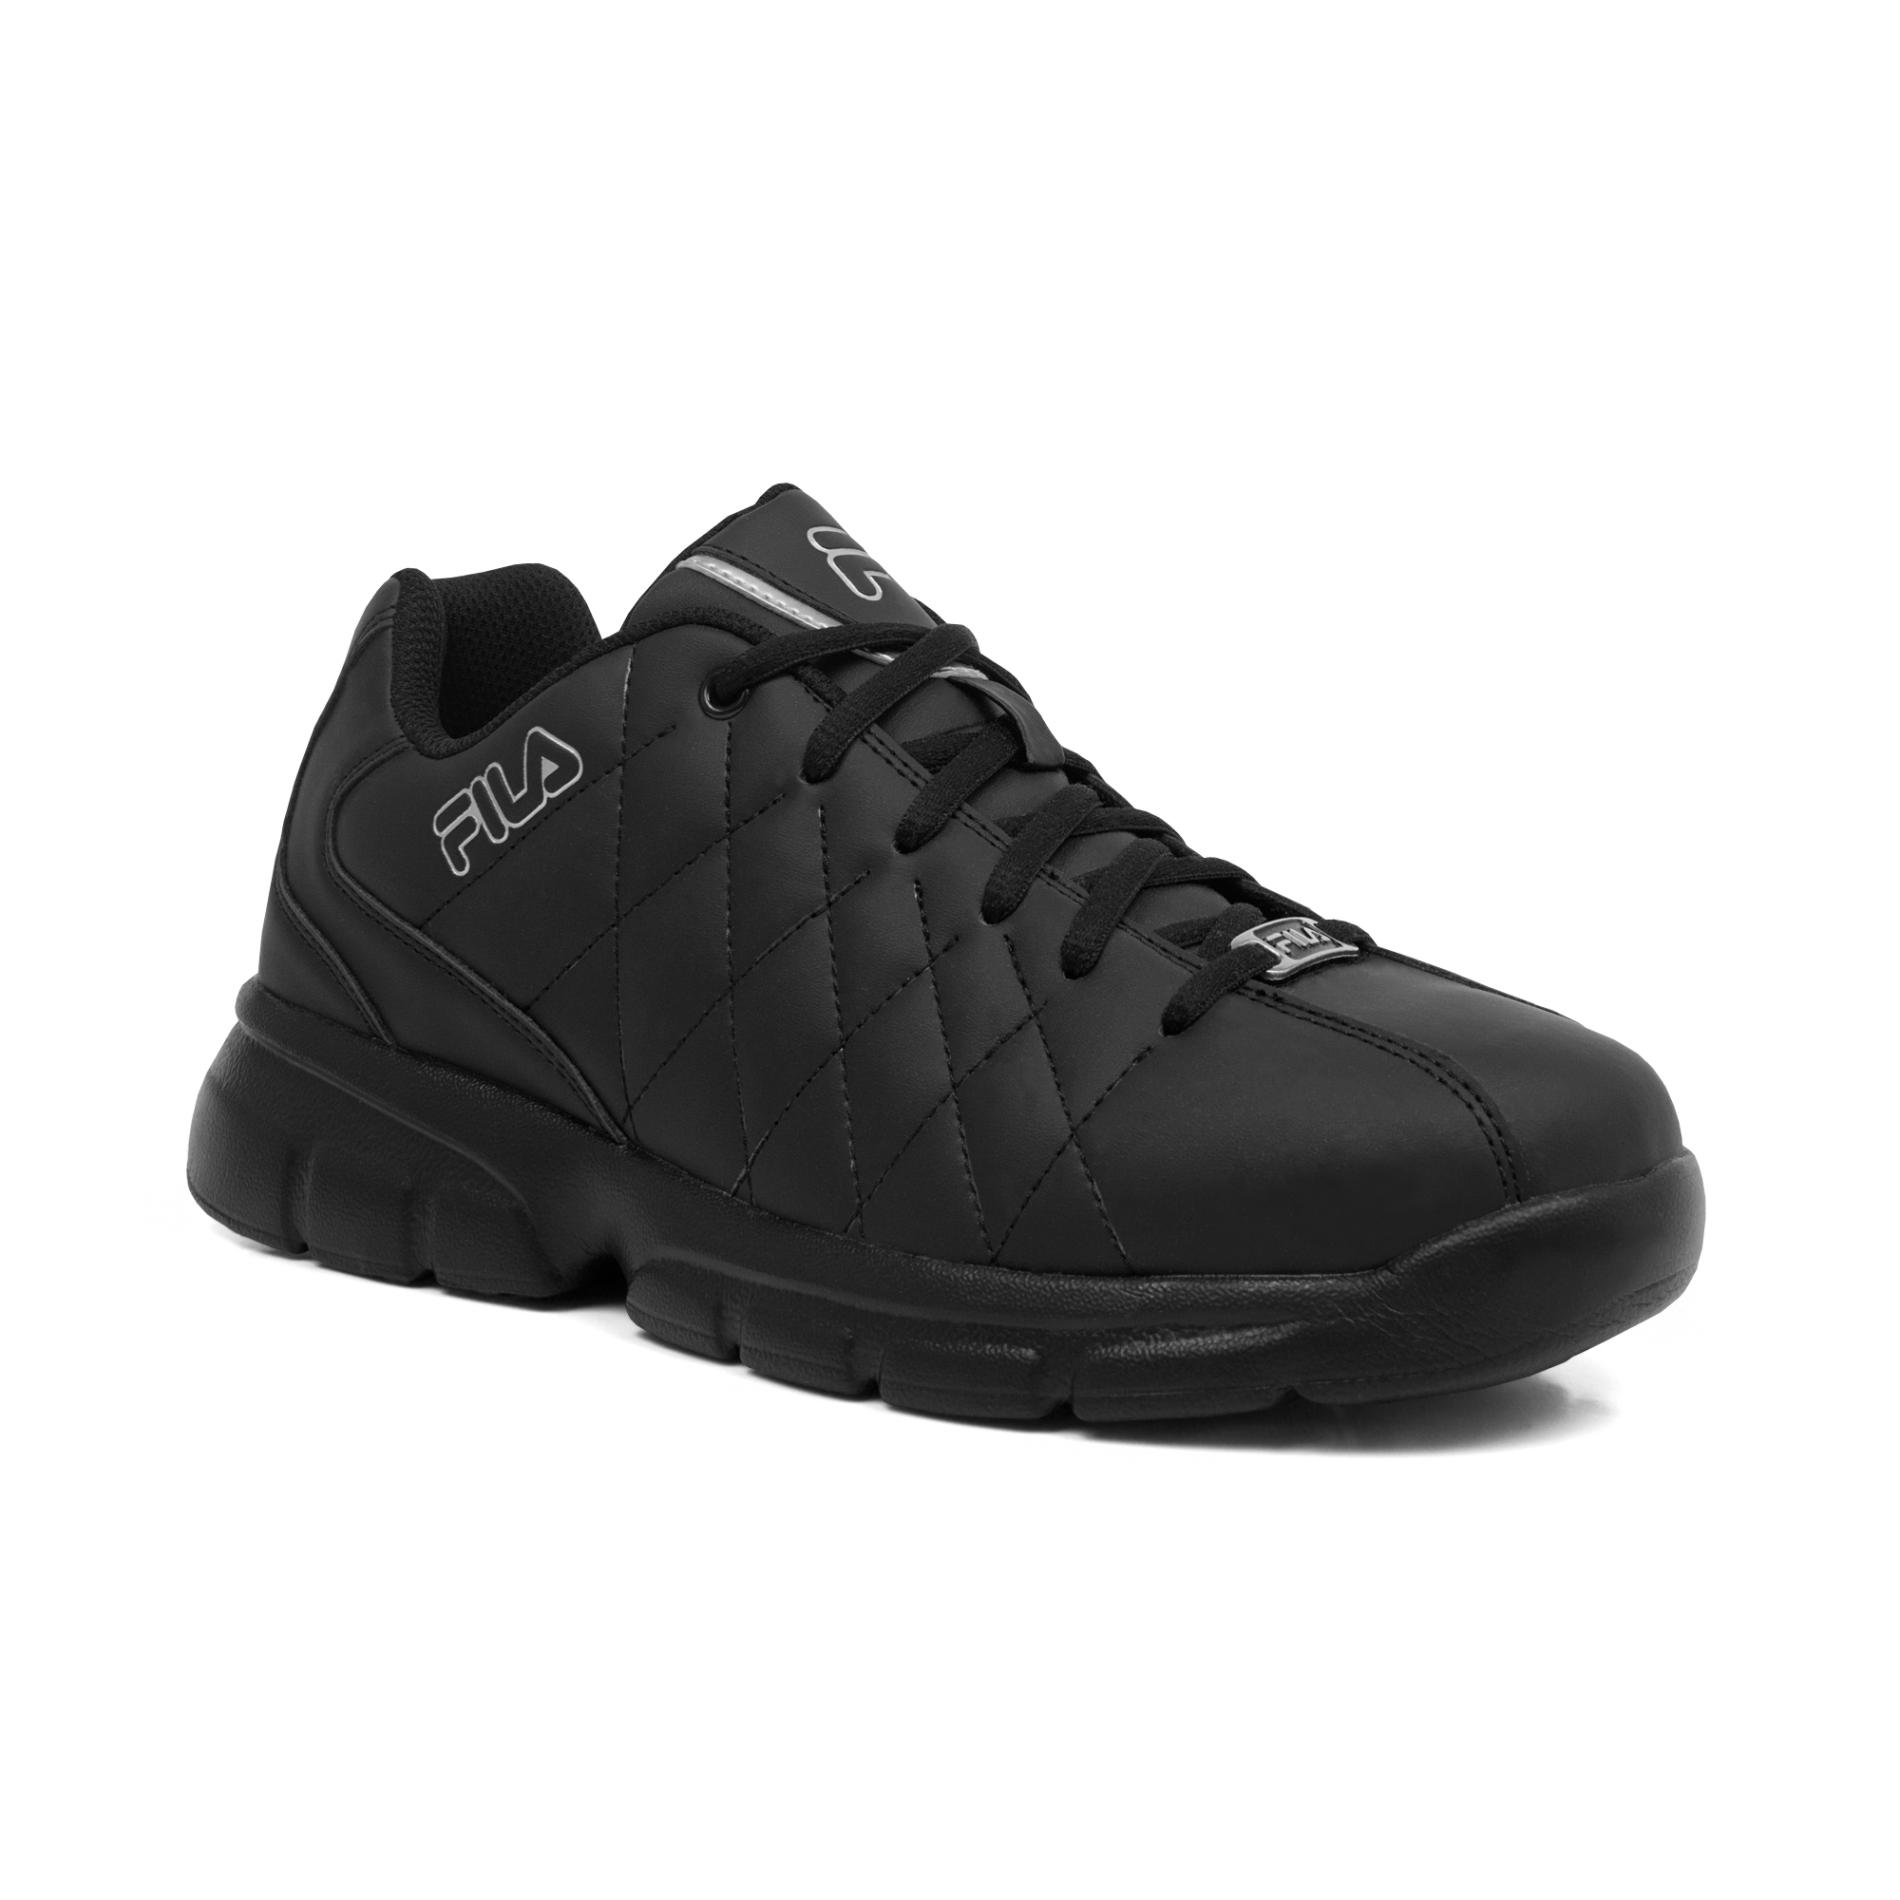 fila shoes fila menu0027s fulcrum 3 athletic shoe - black JJYCXDK